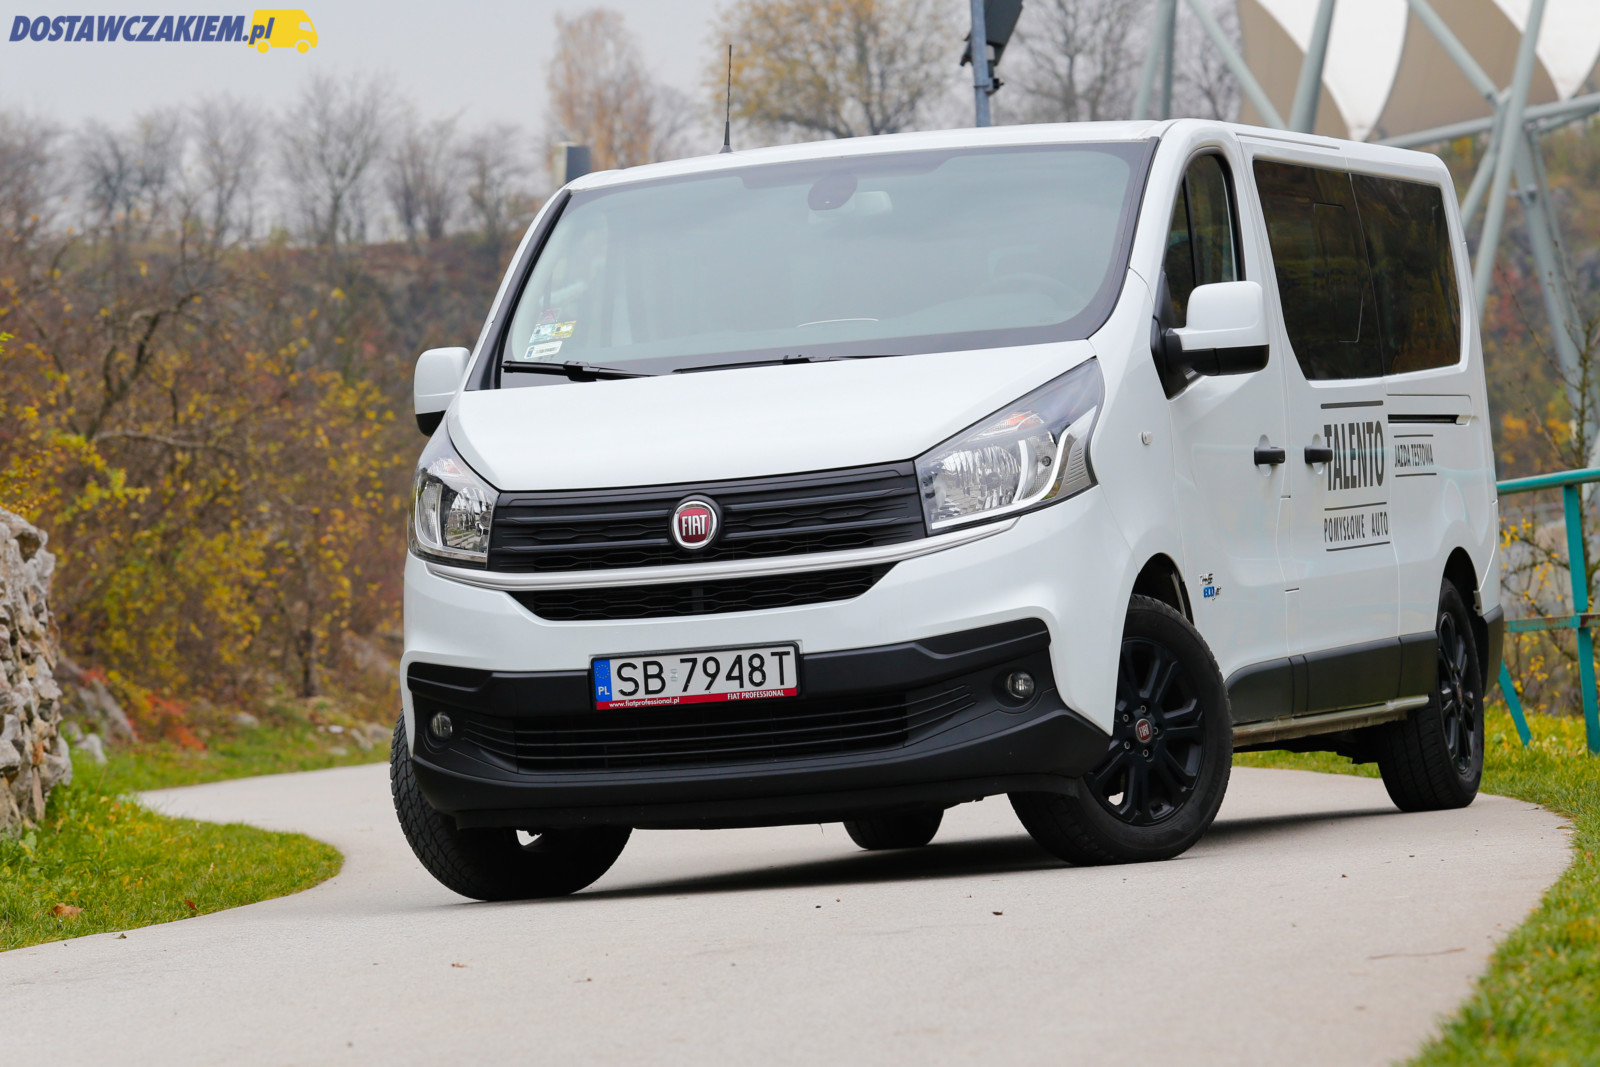 fiat talento kombi 1 6 ecojet 145 km test opinie spalanie. Black Bedroom Furniture Sets. Home Design Ideas